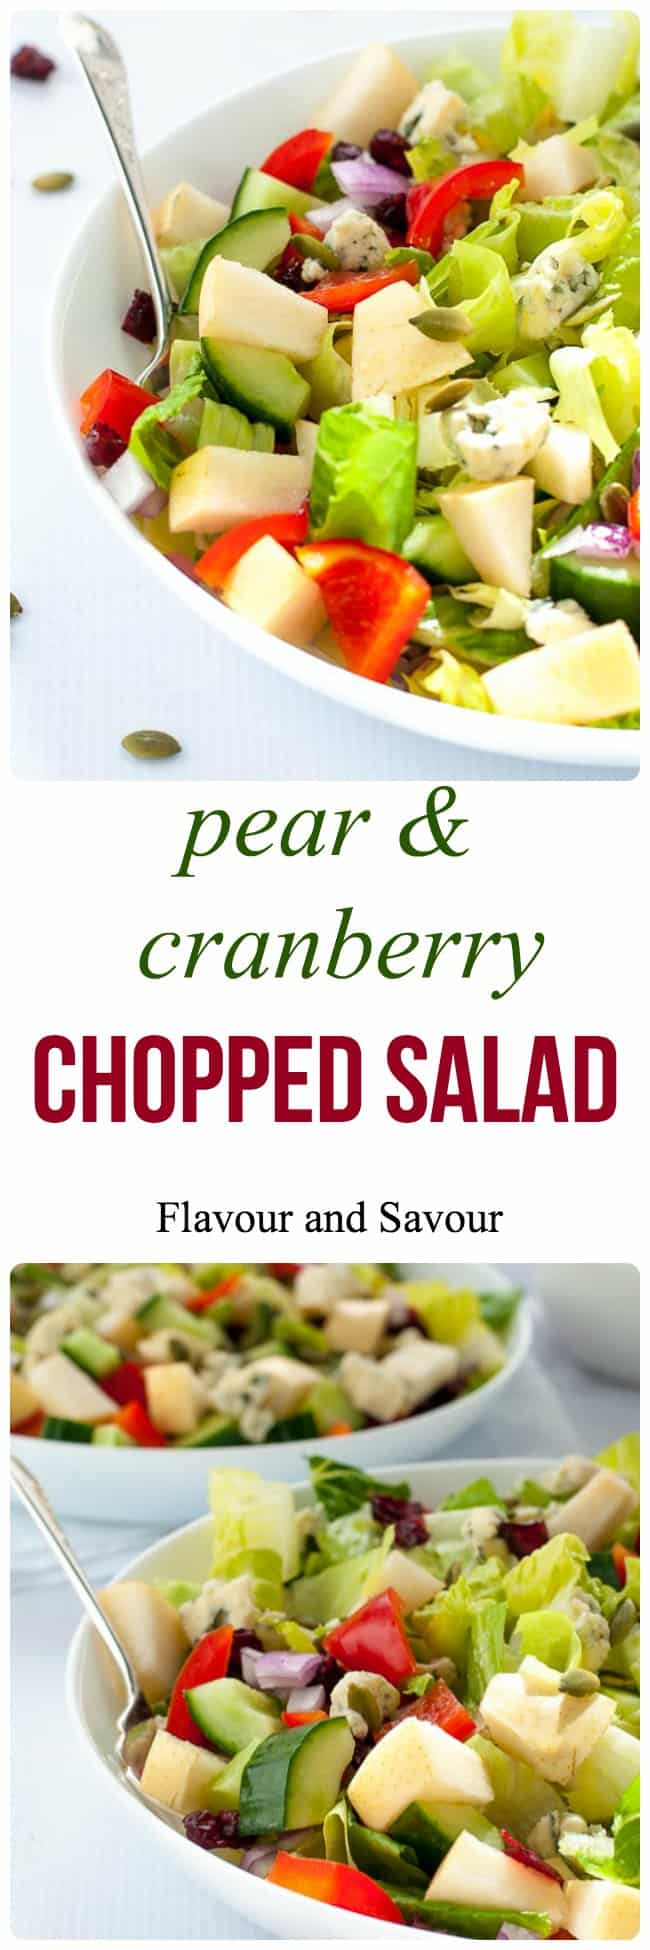 Asian Pear and Cranberry Chopped Salad. Crisp pears and crunchy vegetables with sweet cranberries and tangy blue cheese make this colourful fall salad. A family favourite, perfect for potlucks.